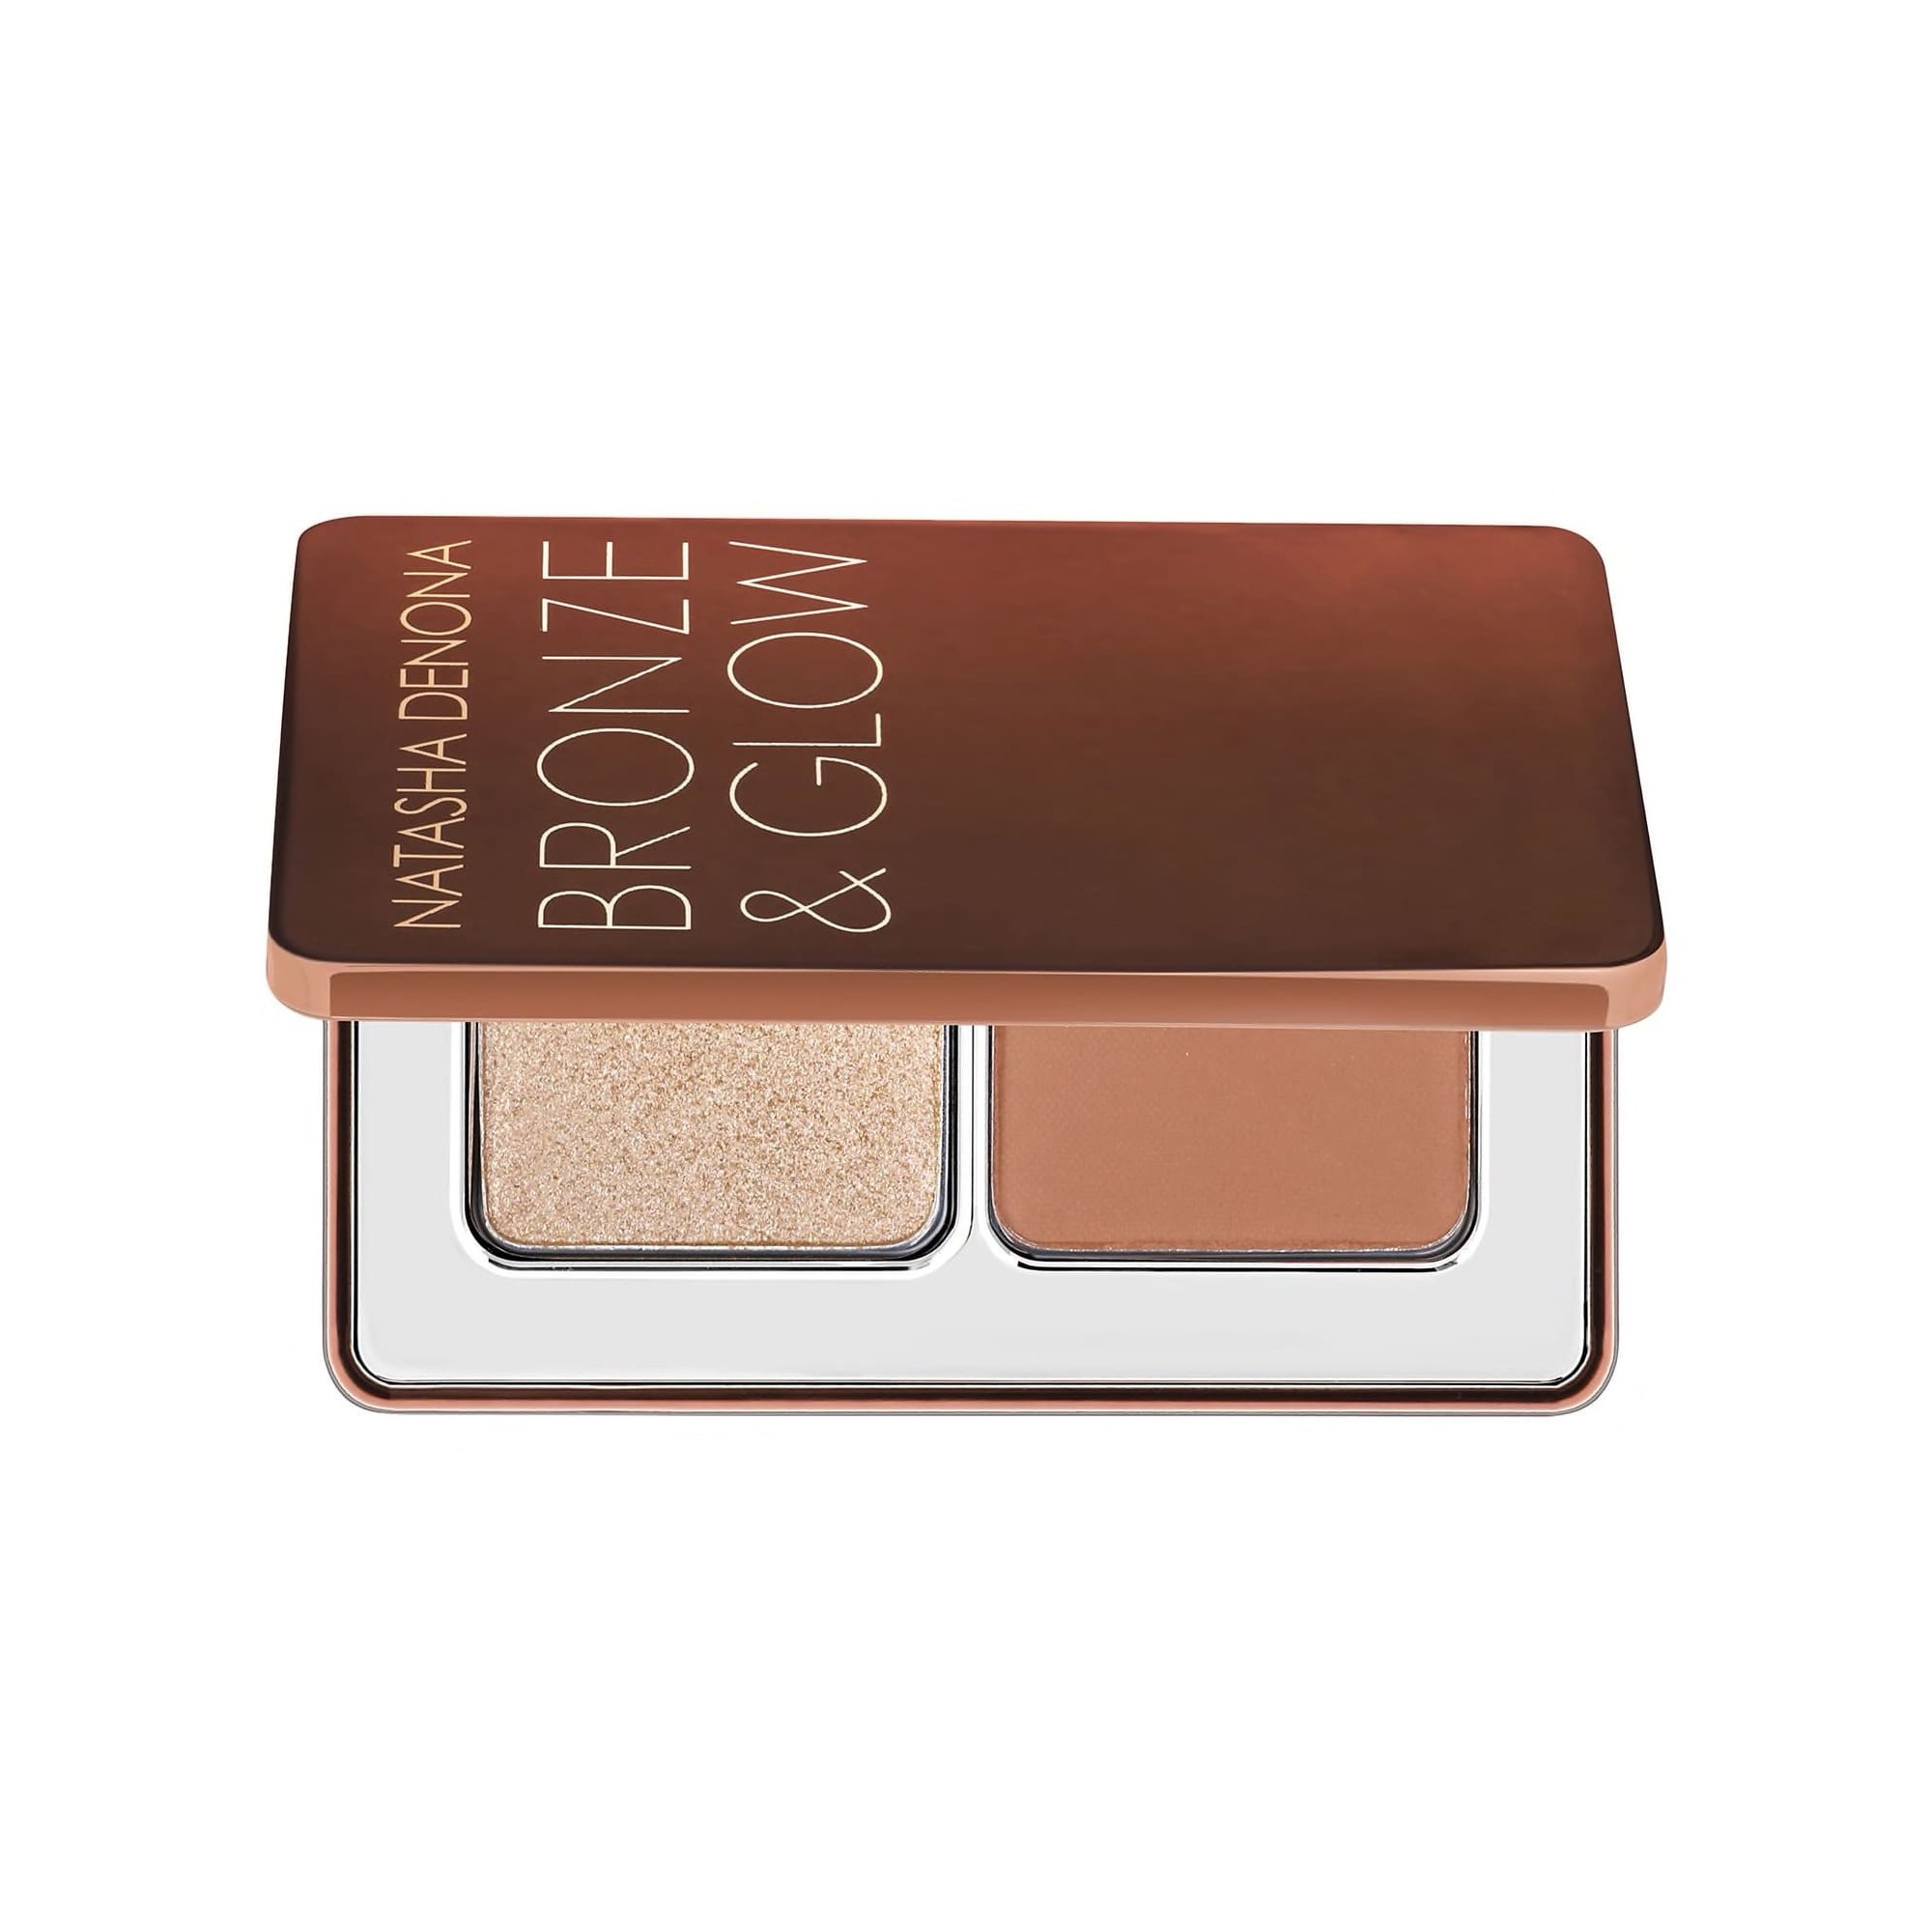 Natasha Denona Mini Bronze & Glow Cheek Duo